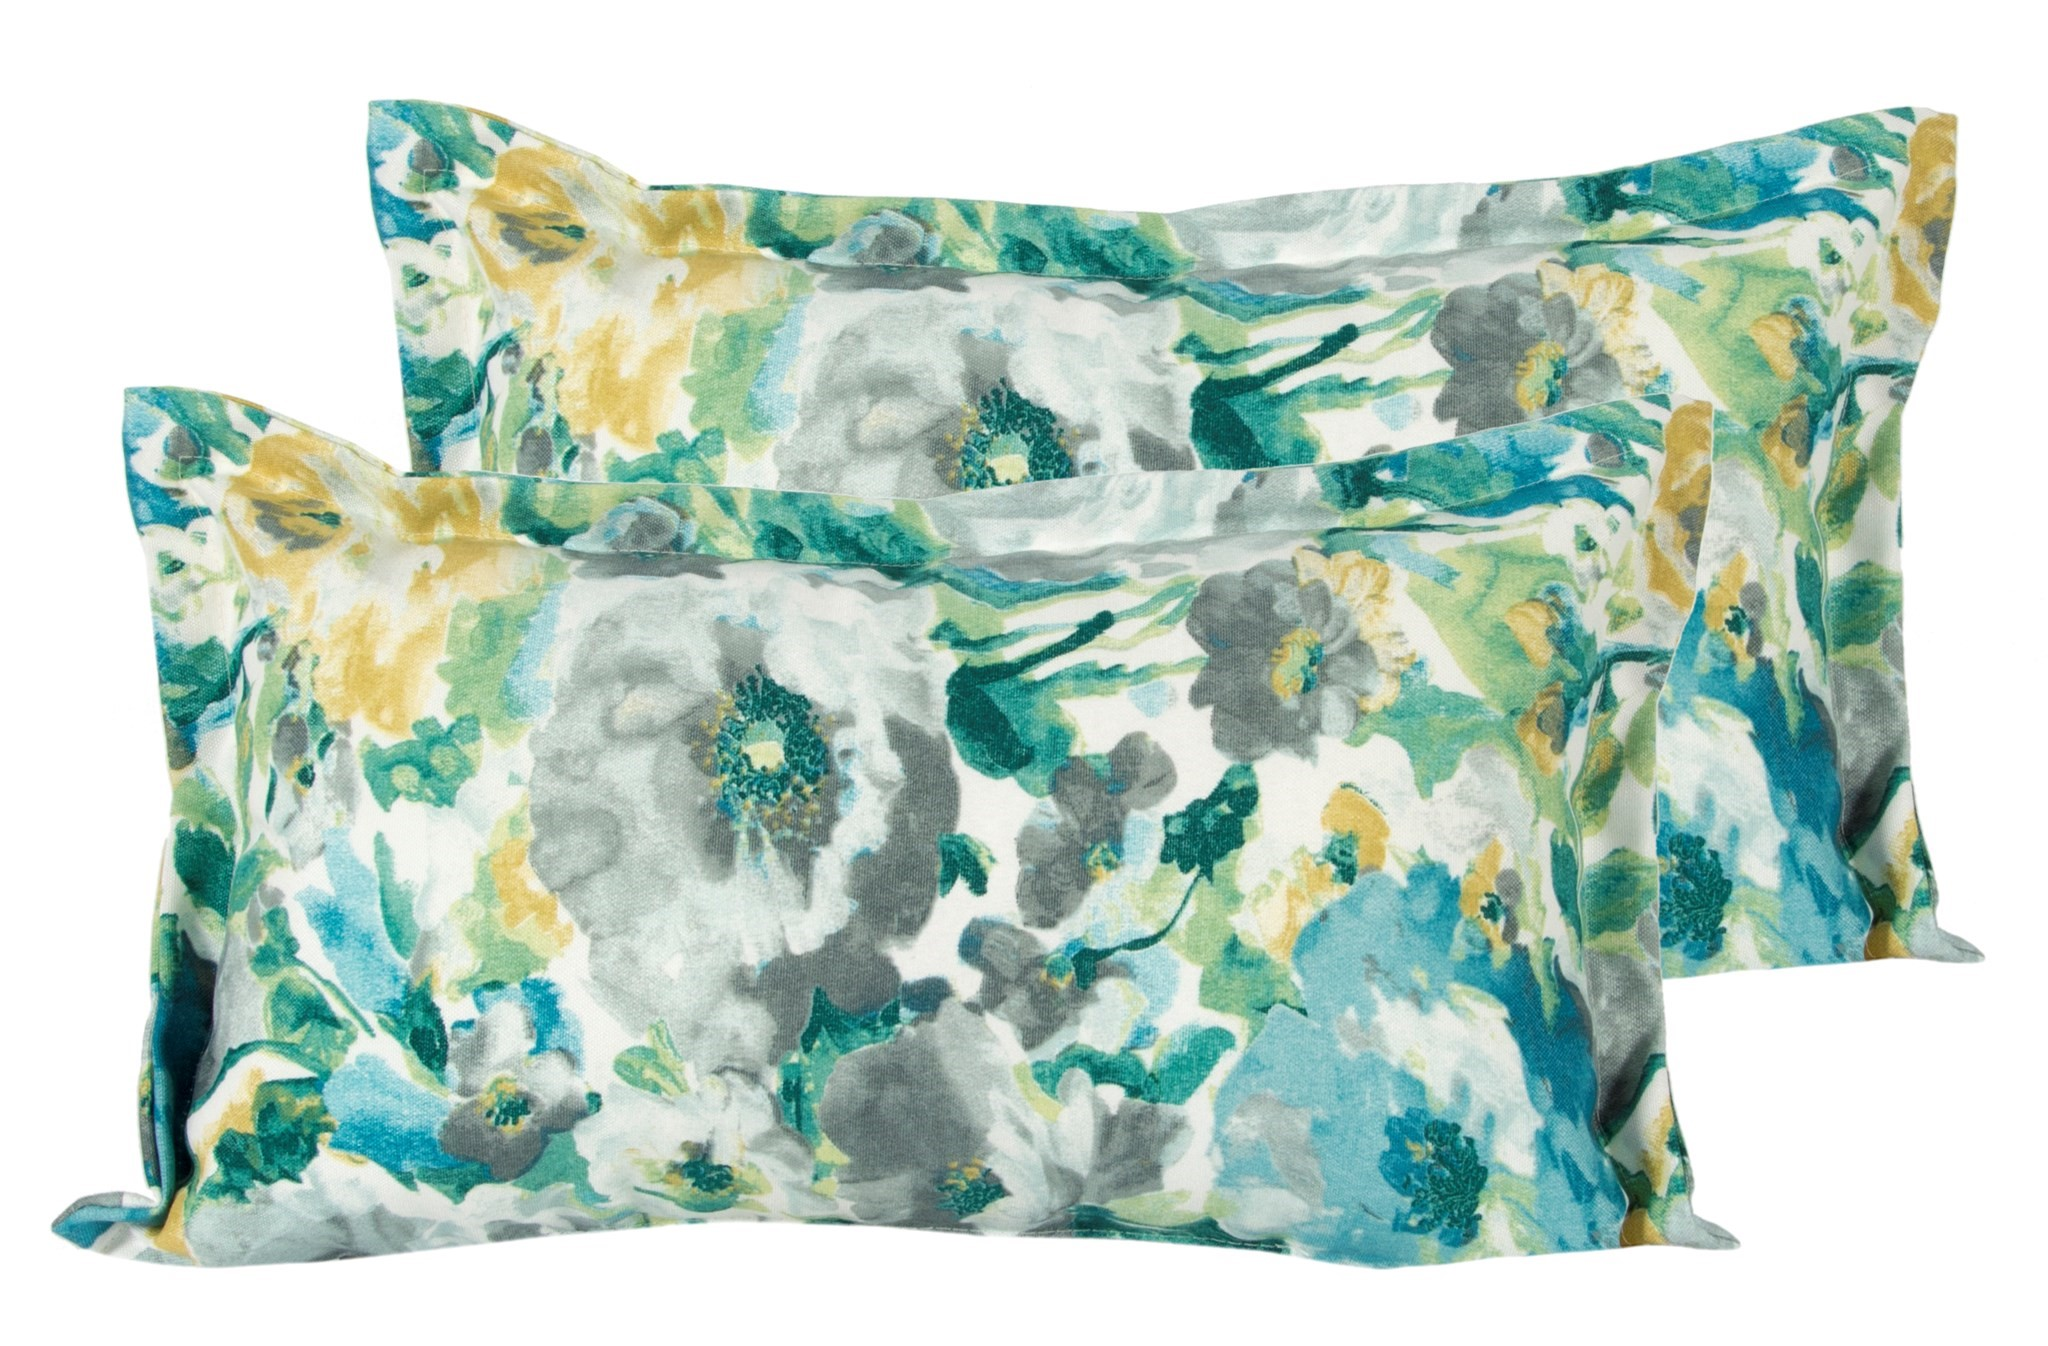 11x20 Outdoor Pillow by Ninety-Five & Co, Amanda's House Of Elegance  (Special Order Only - Minimum Qty 2)    ($29.95 each)